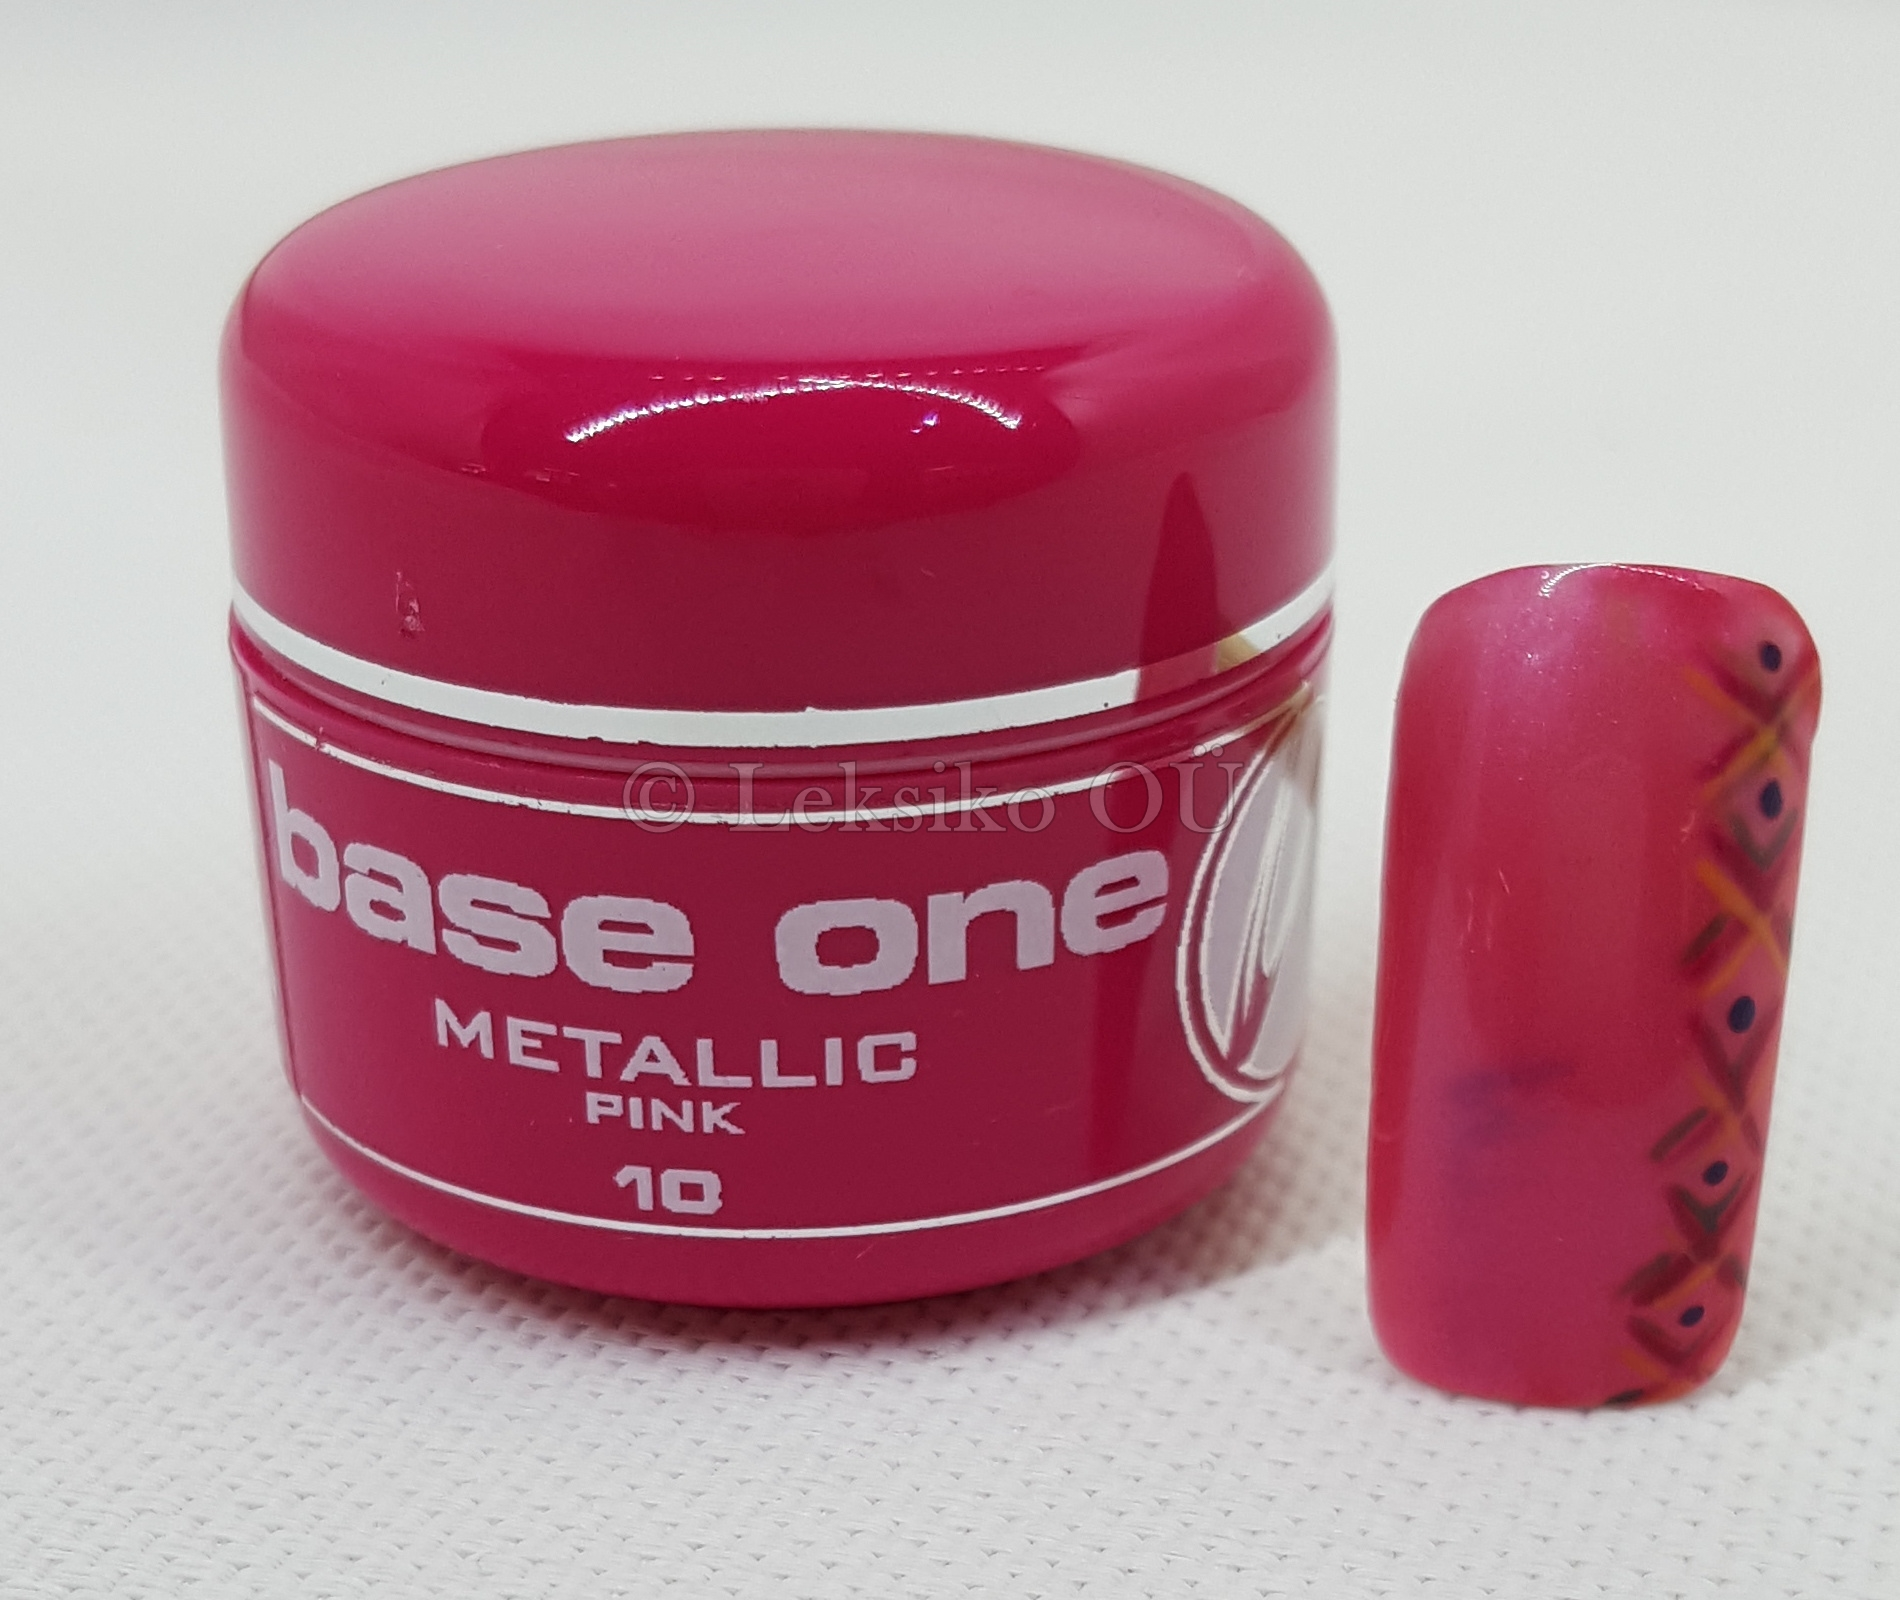 varviline-geel-base-one-metallic-pink.jpg